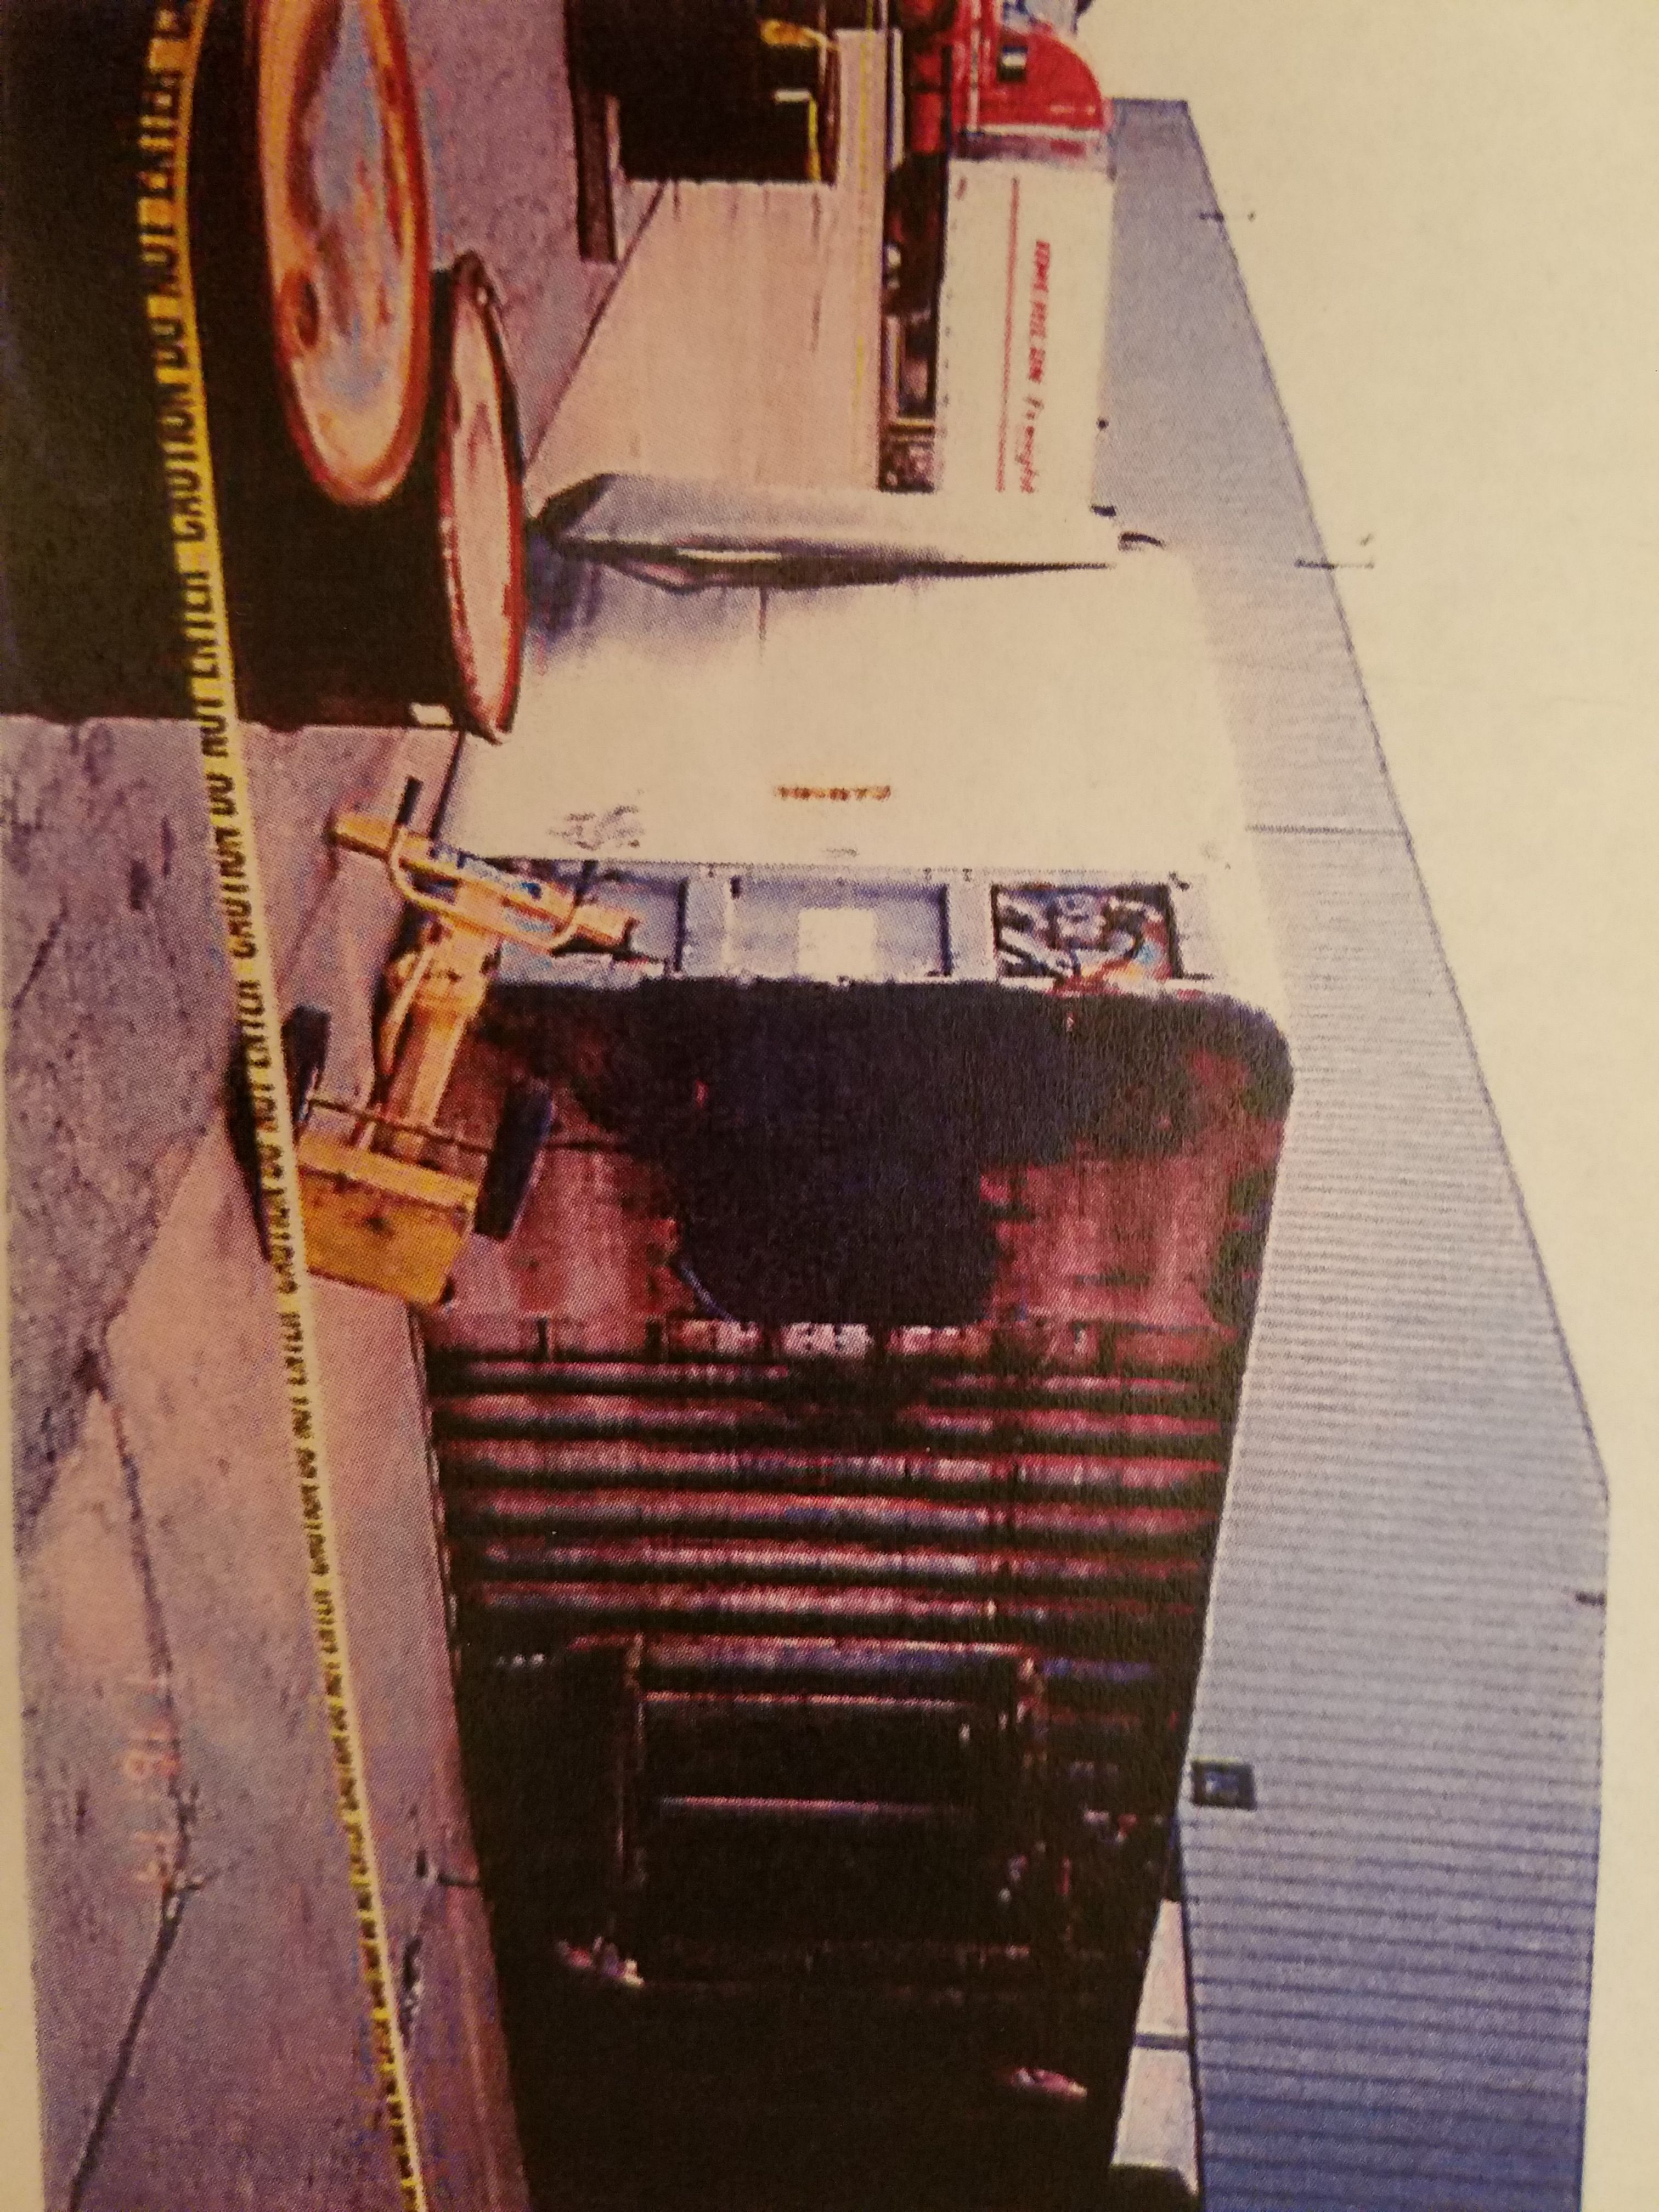 Uh oh! Avoid loading dock accidents like this with the